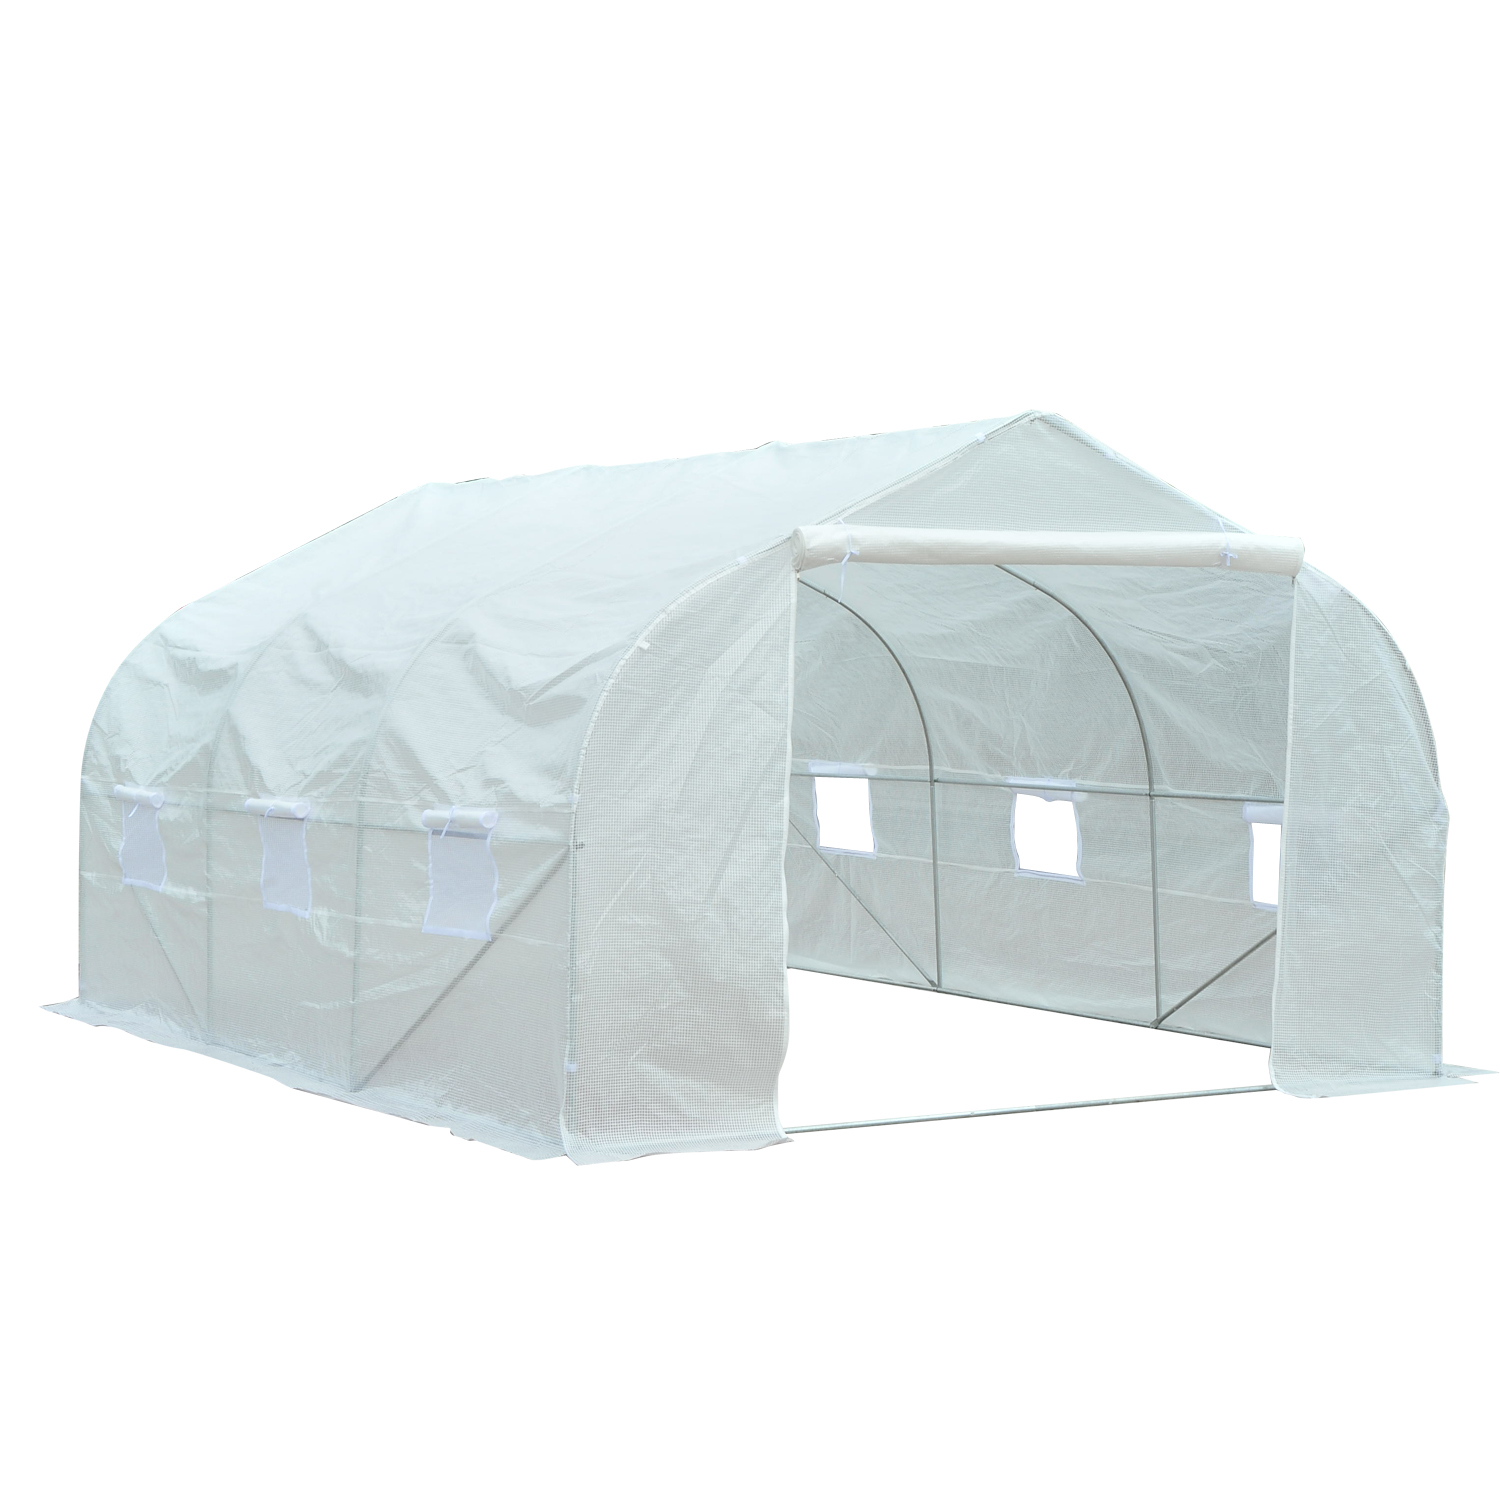 Outsunny 11 x 10 x 7 Portable Walk-In Garden Greenhouse White by Aosom